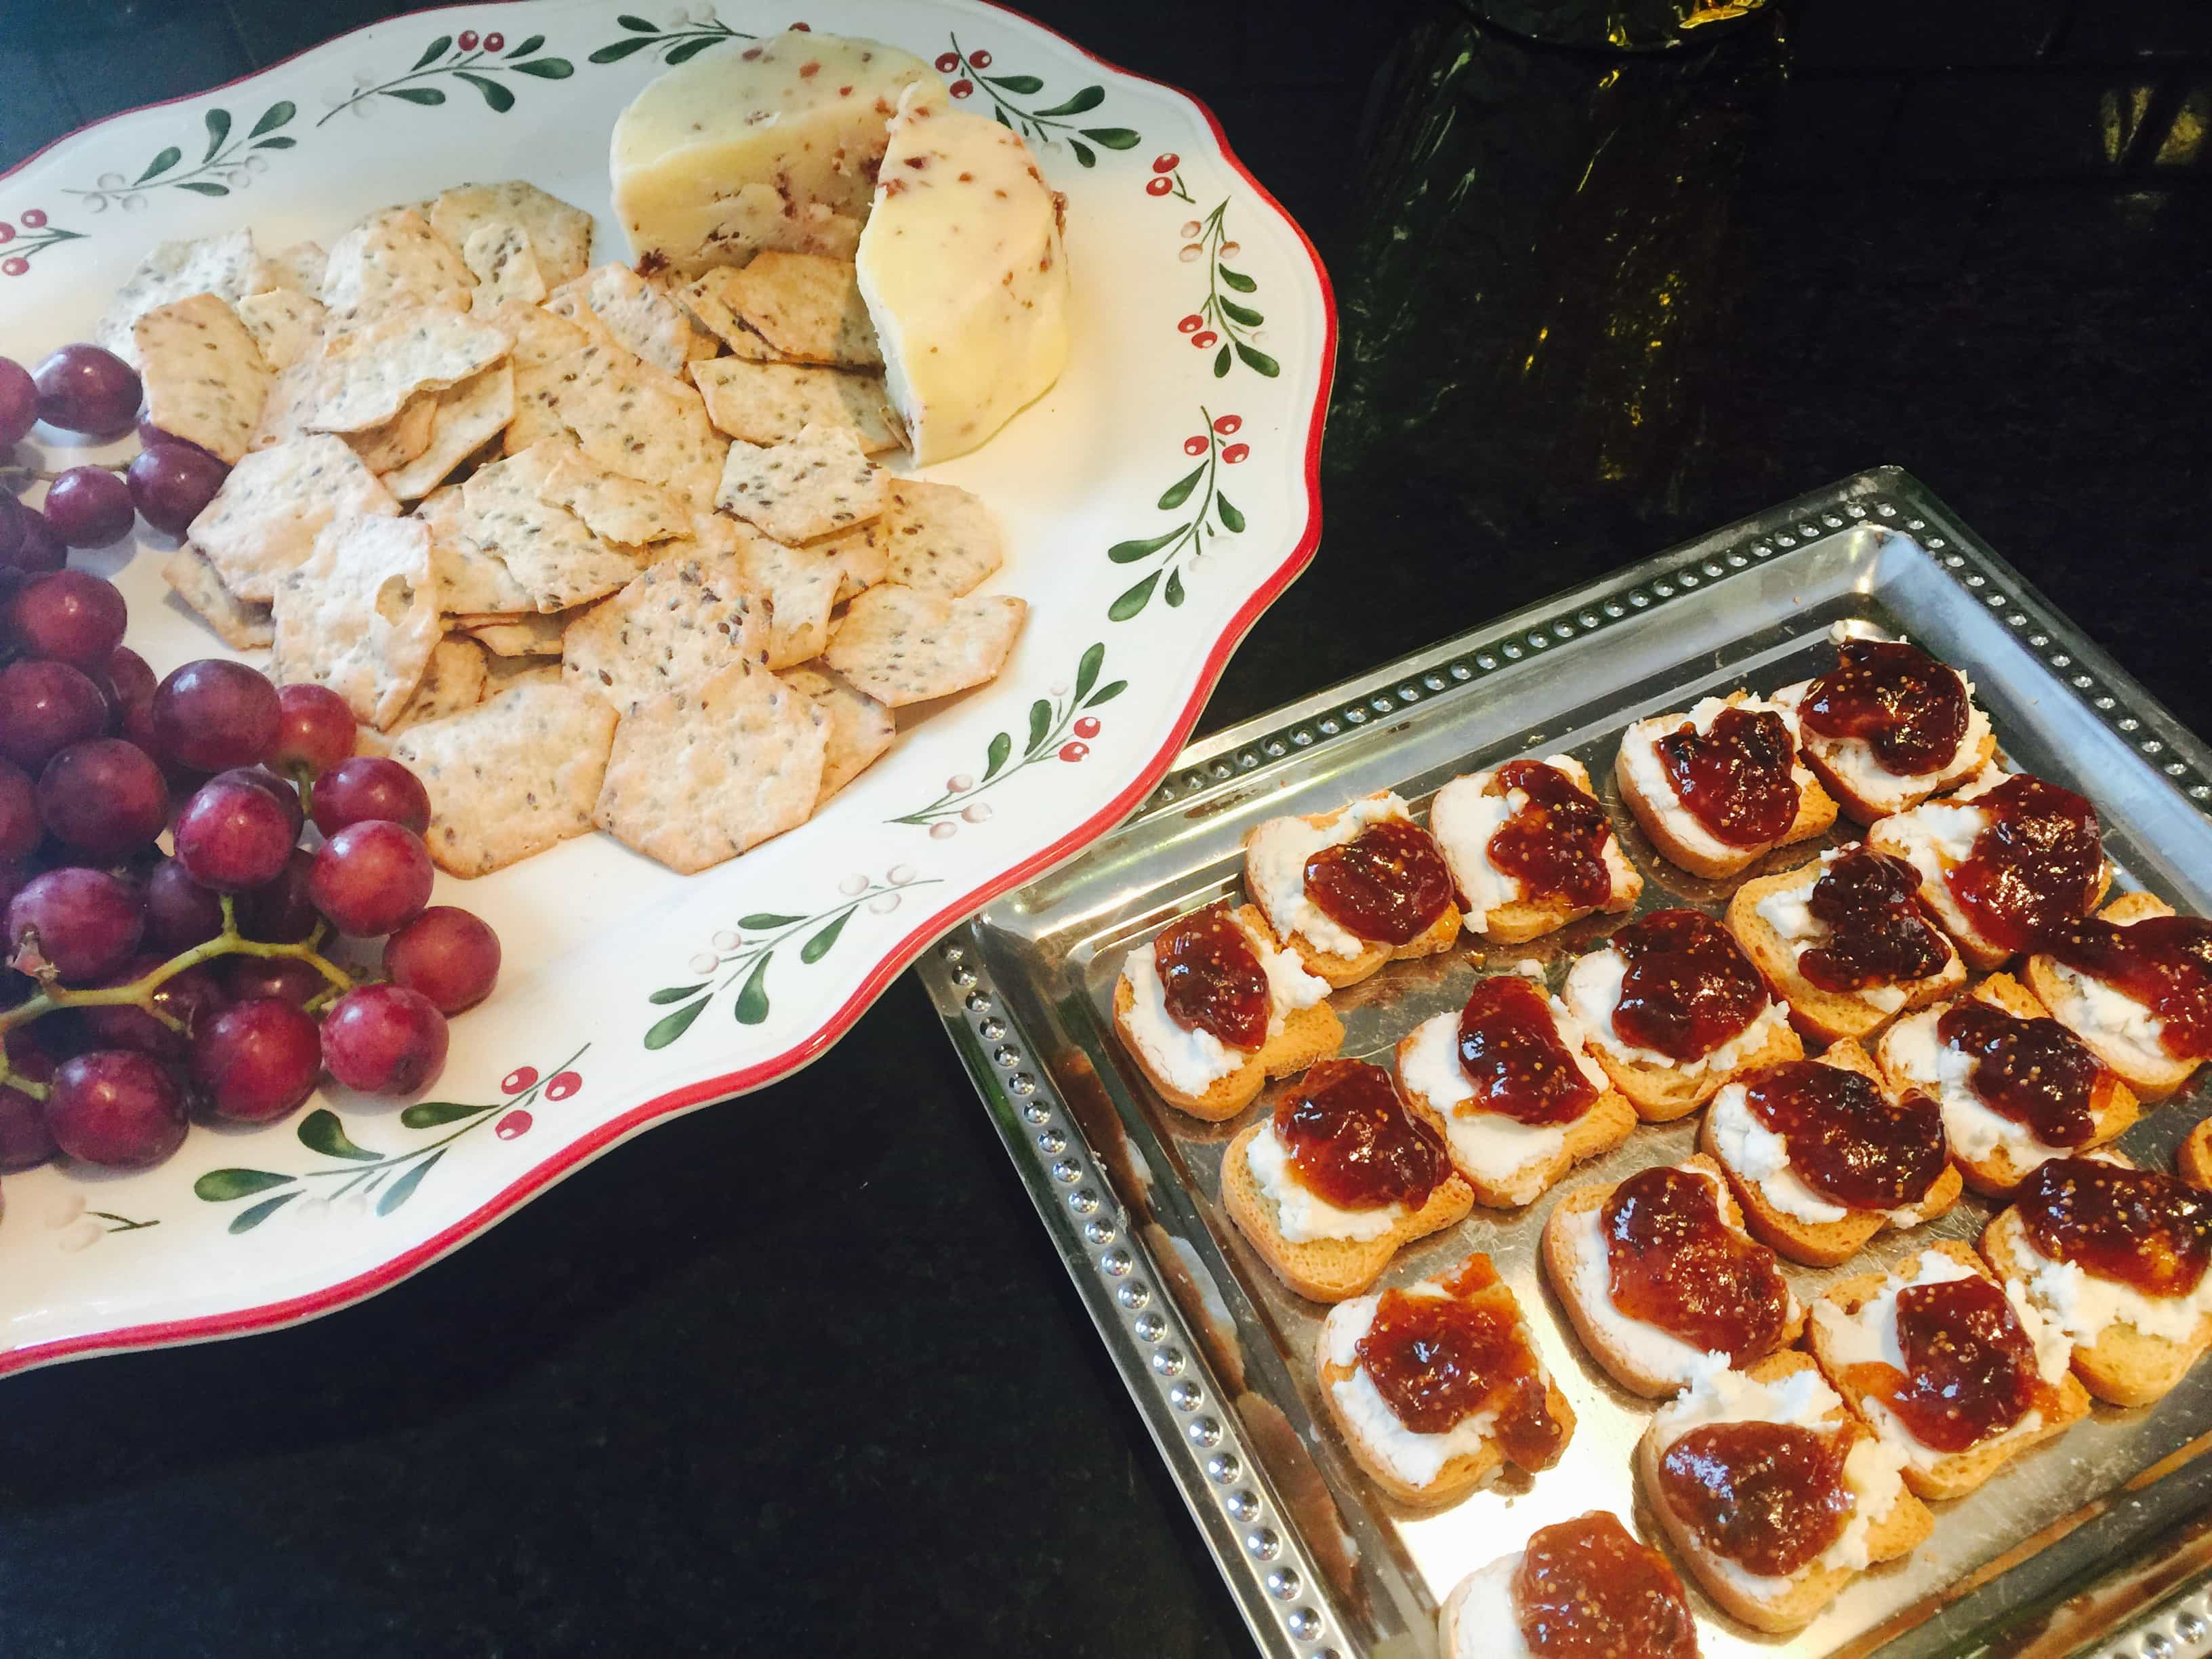 Holiday cheese platter - It's time to make Real Solutions for healthy eating in 2016